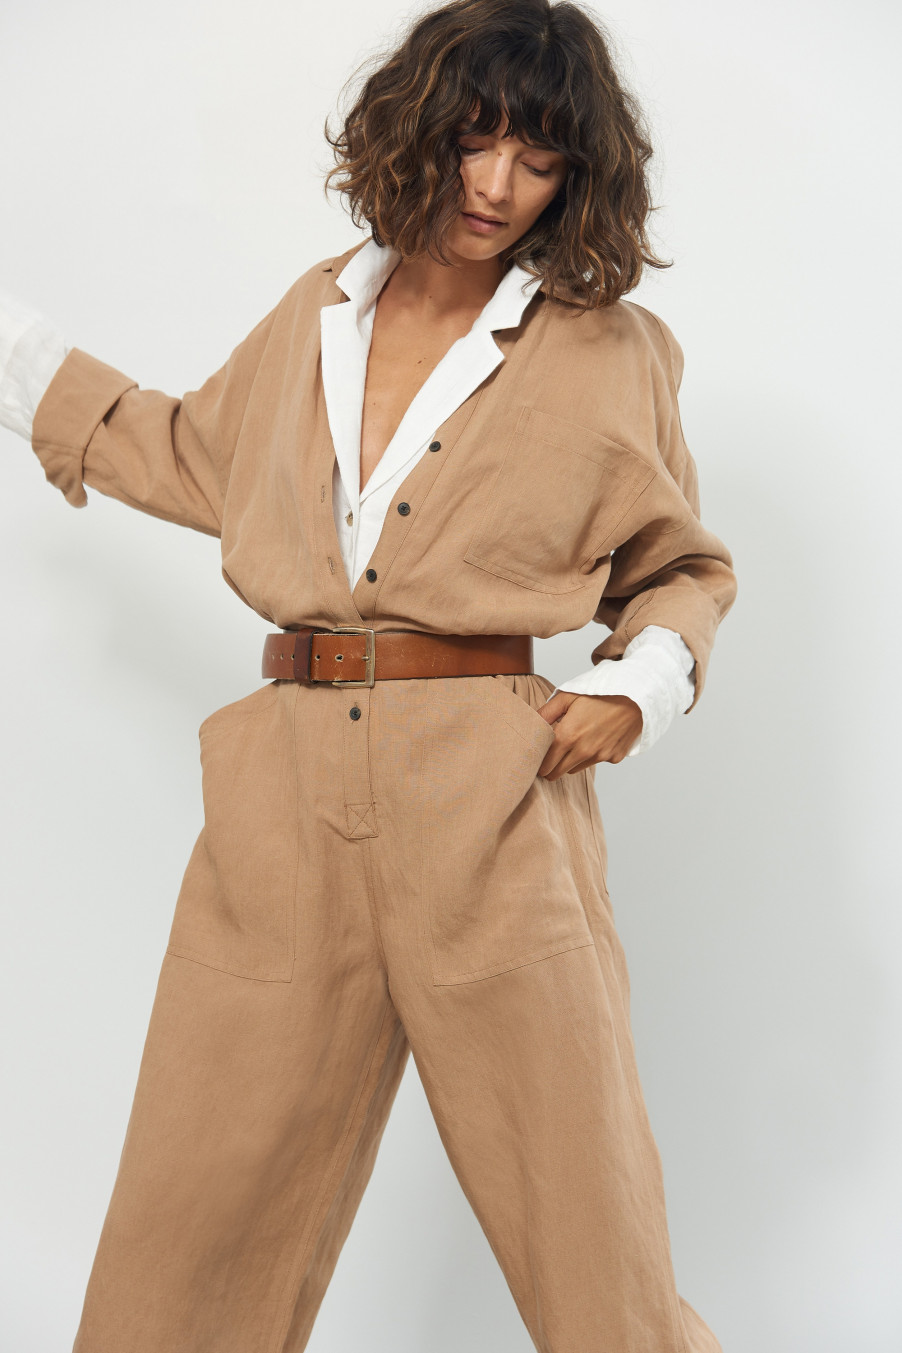 agatha-belted-button-up-jumpsuit-khaki-1.jpg